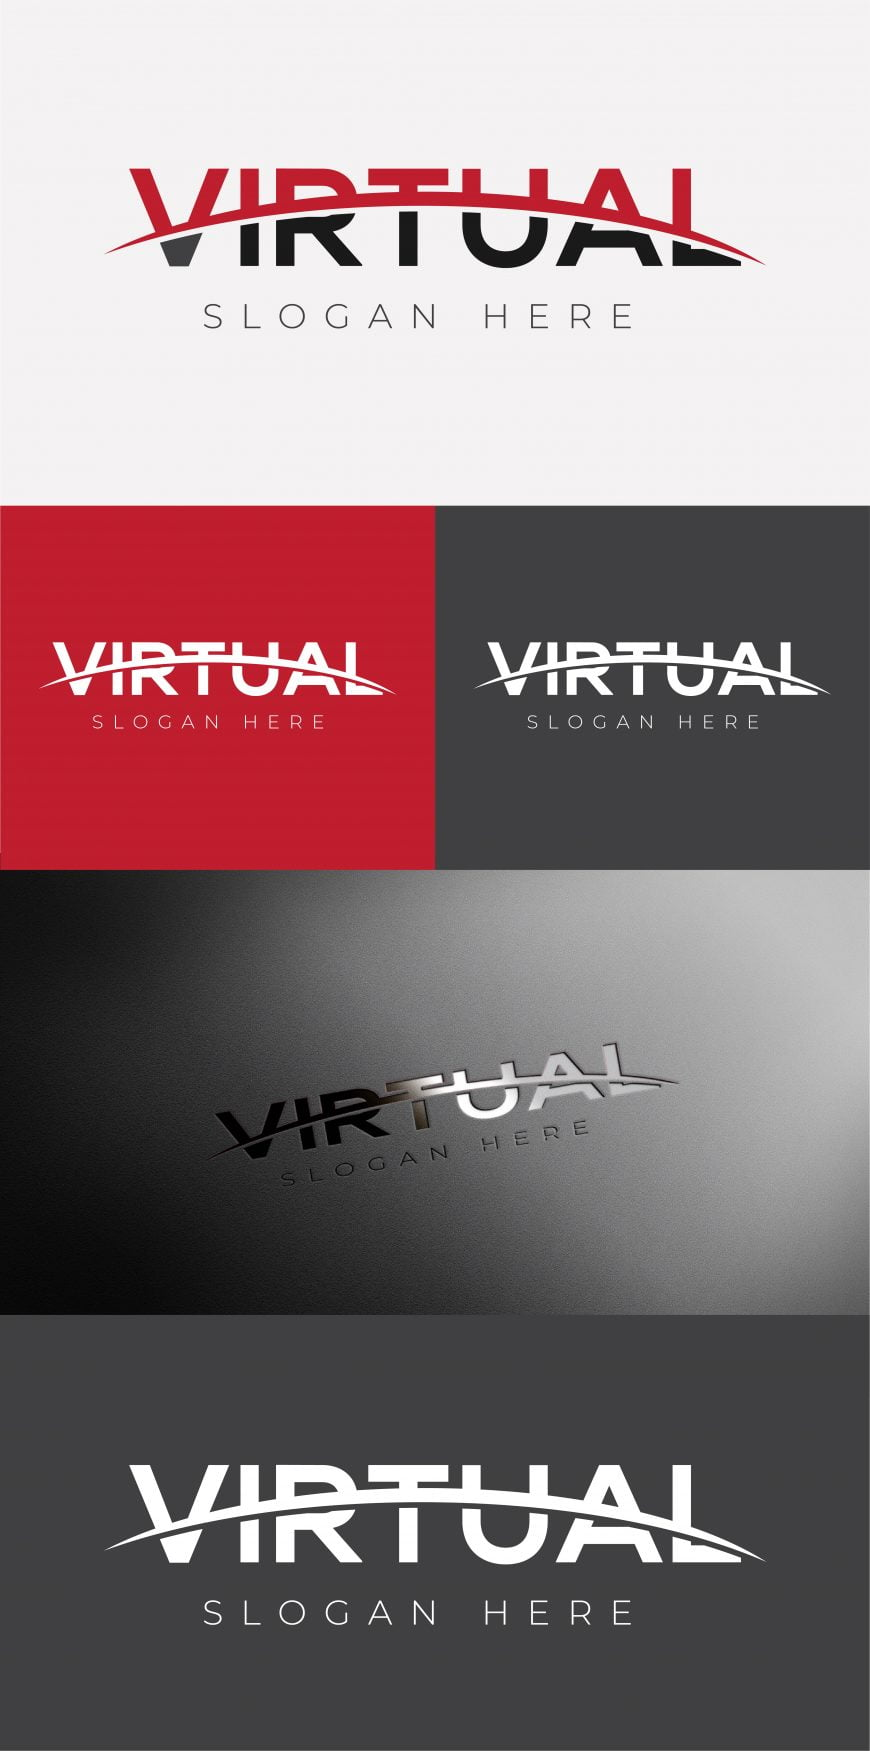 VIRTUAL-LOGO-DESIGN-FREE-TEMPLATE-1-scaled